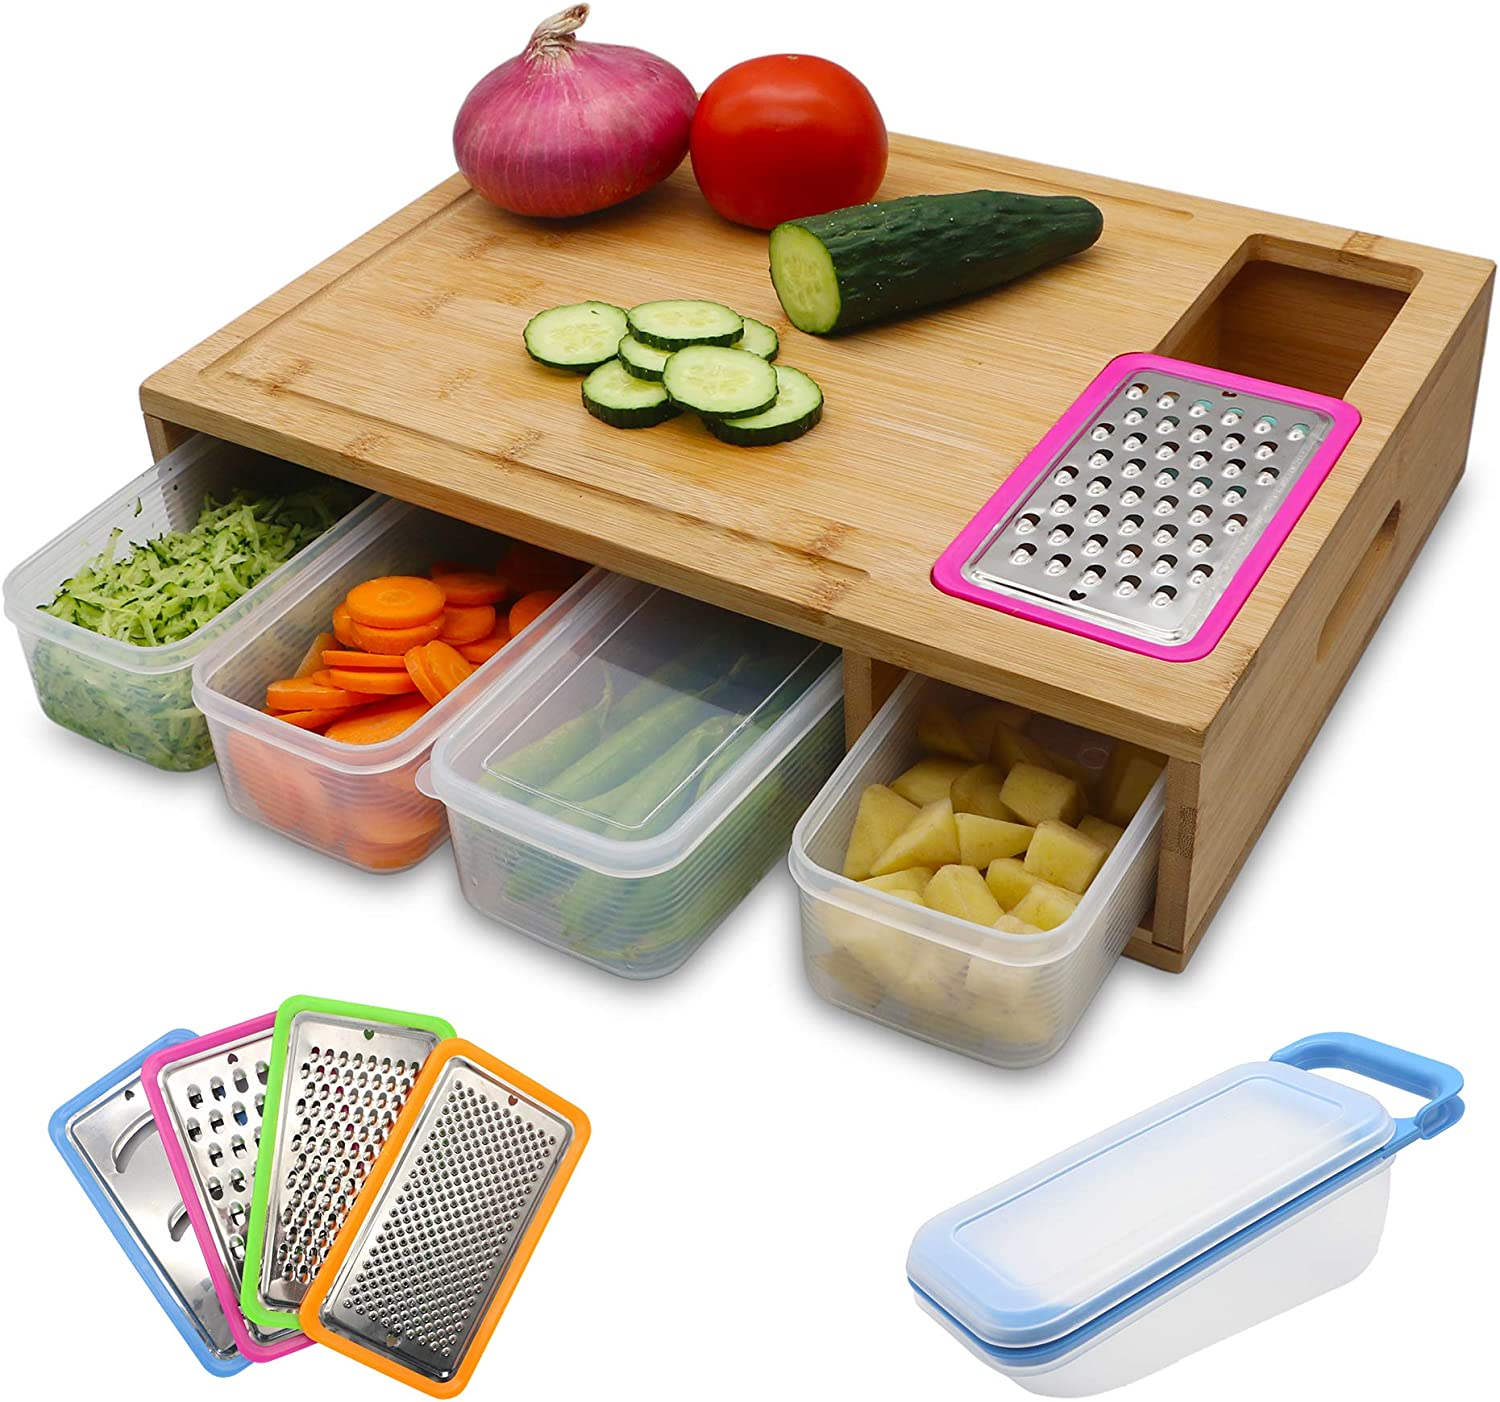 EZ Life Hub Bamboo Cutting Board with Containers - Prep deck with Juice Groove - Cutting Board with Containers, 4 Graters and a Box to Store Chopped Food - Large Prepdeck with 4 Trays